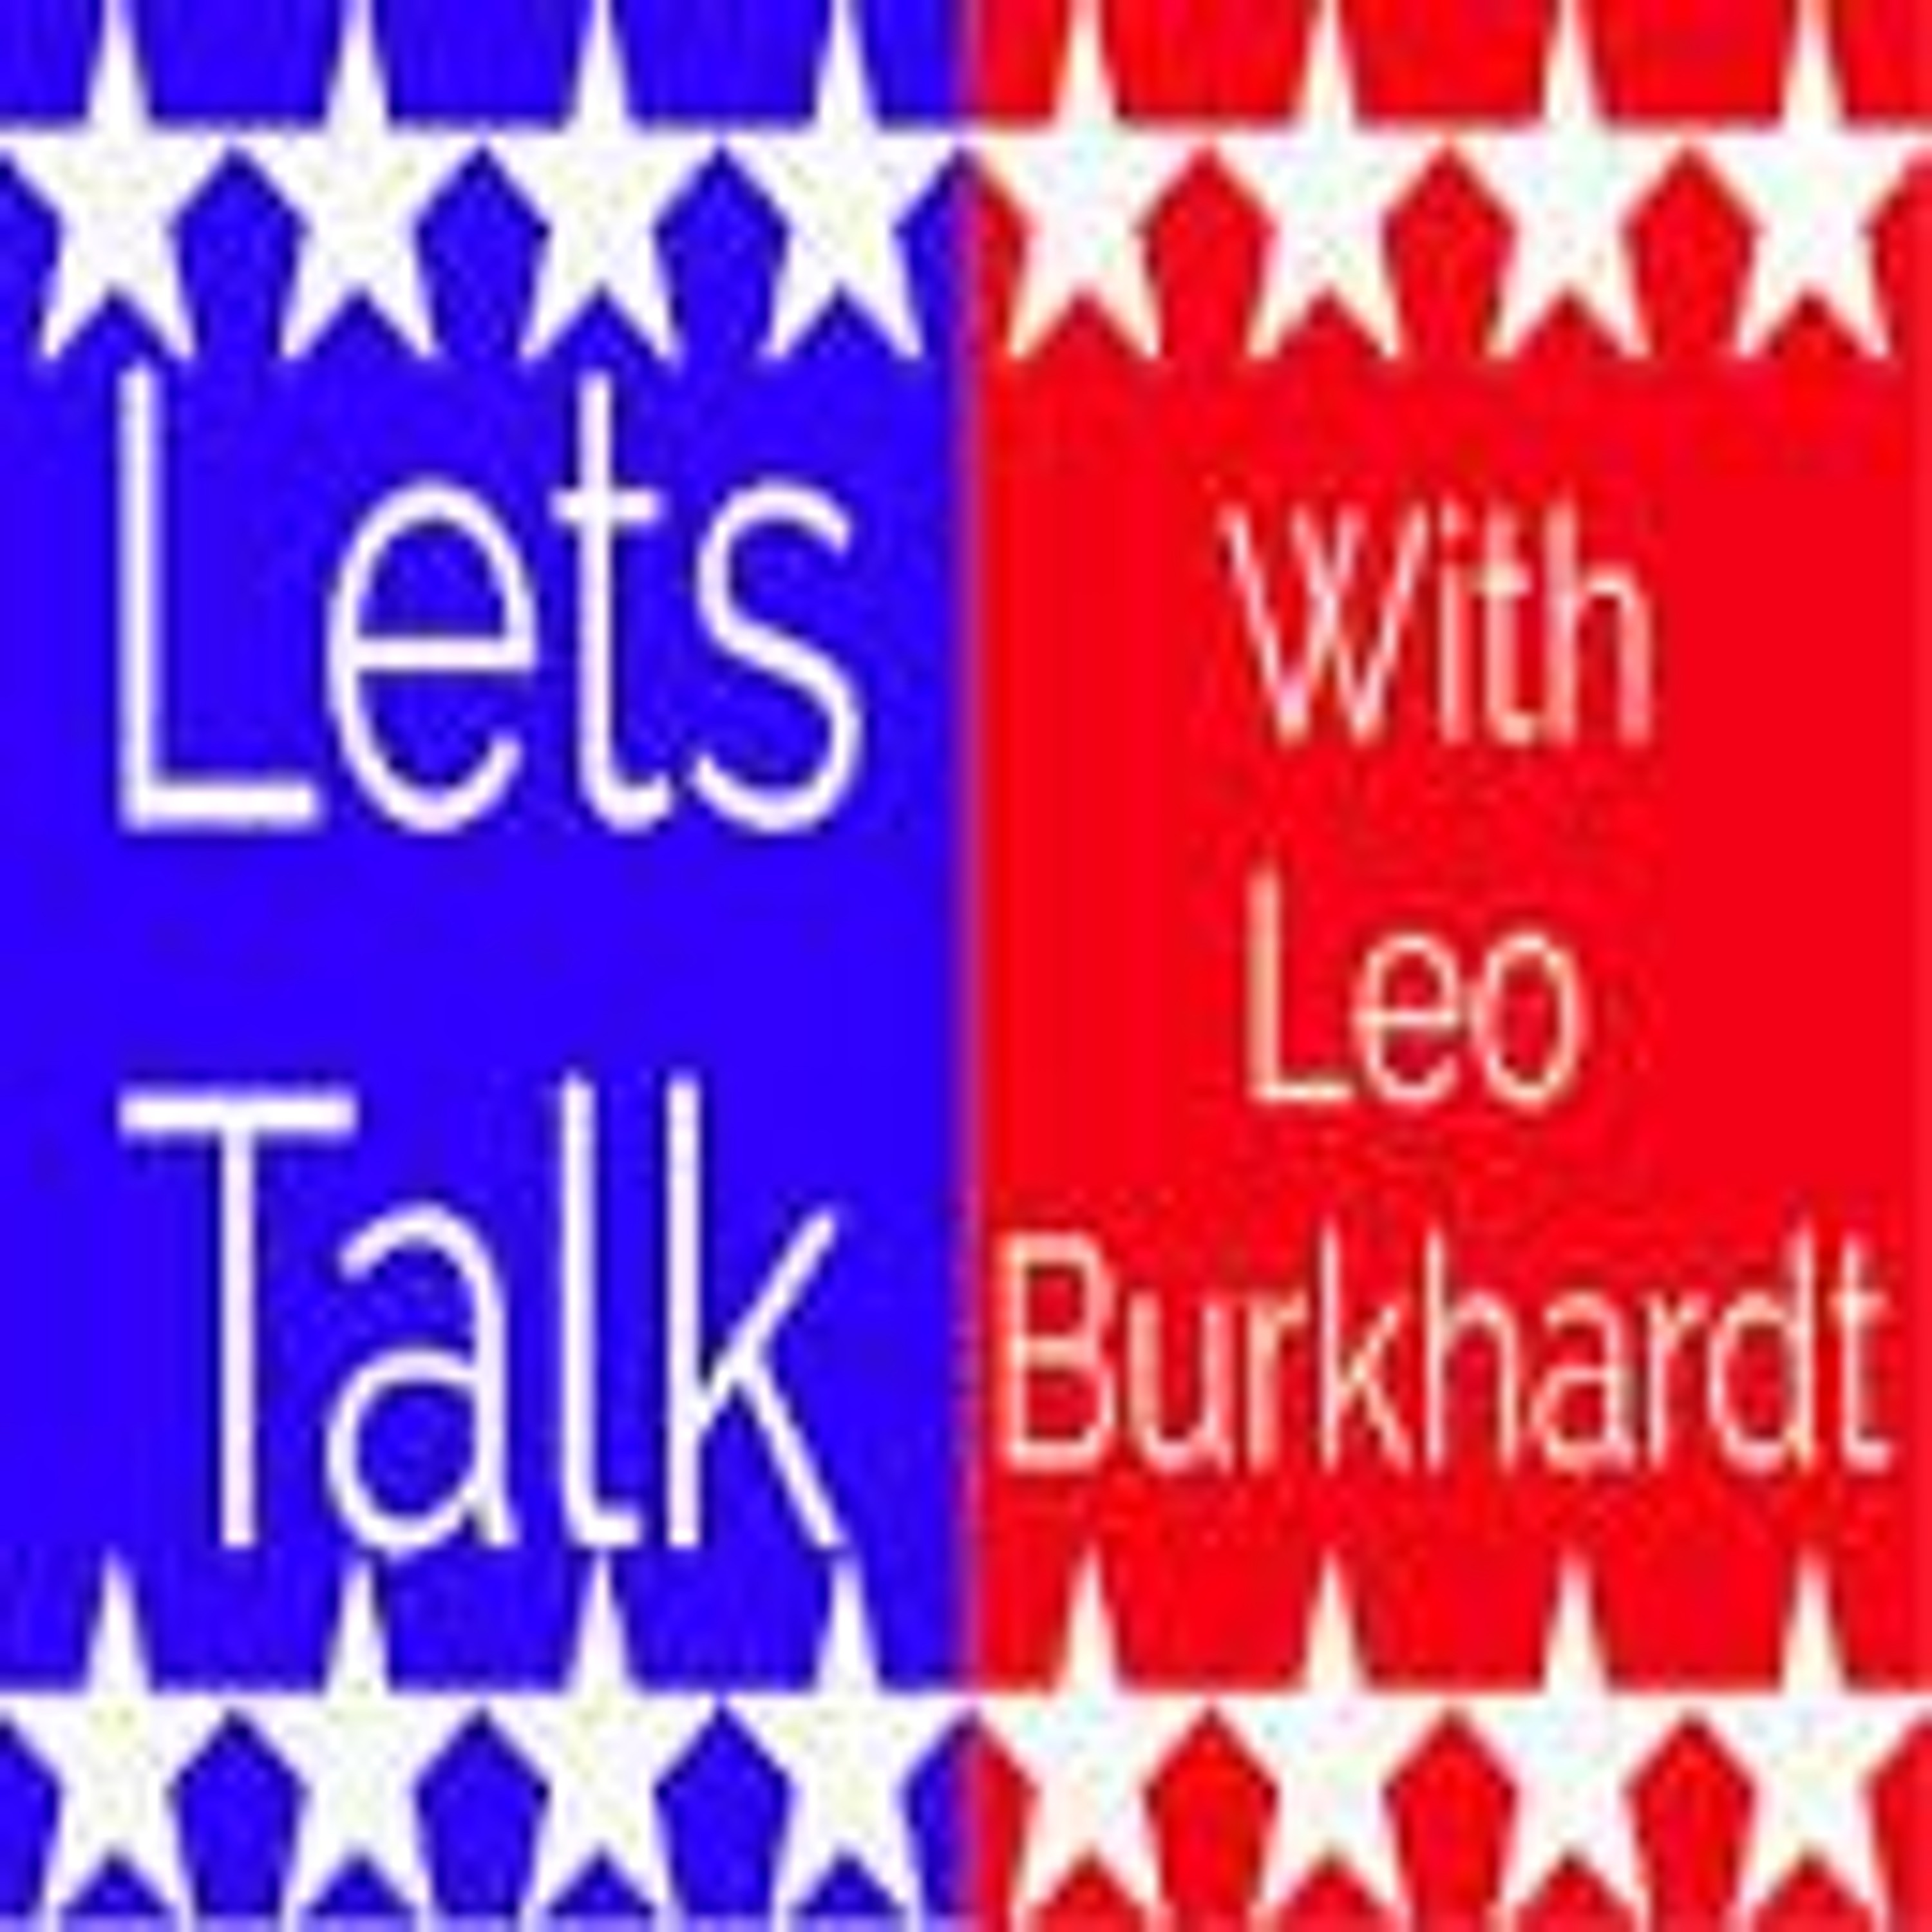 Lets Talk, with Leo Burkhardt